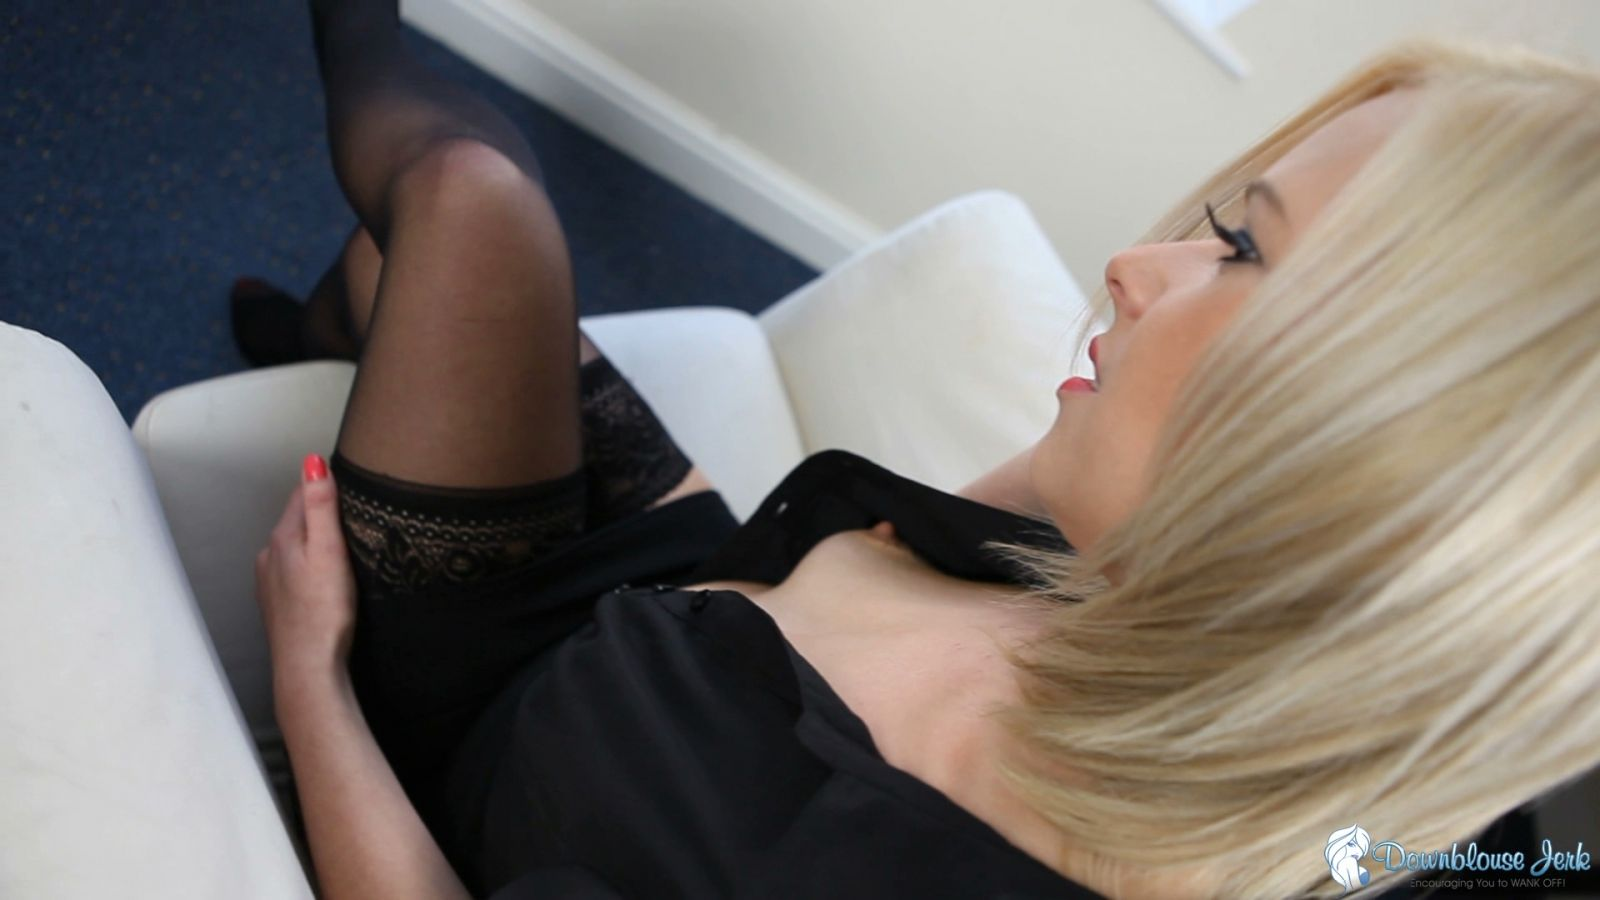 Anna Joy Cum Down Here Hd 0h01m52 000s